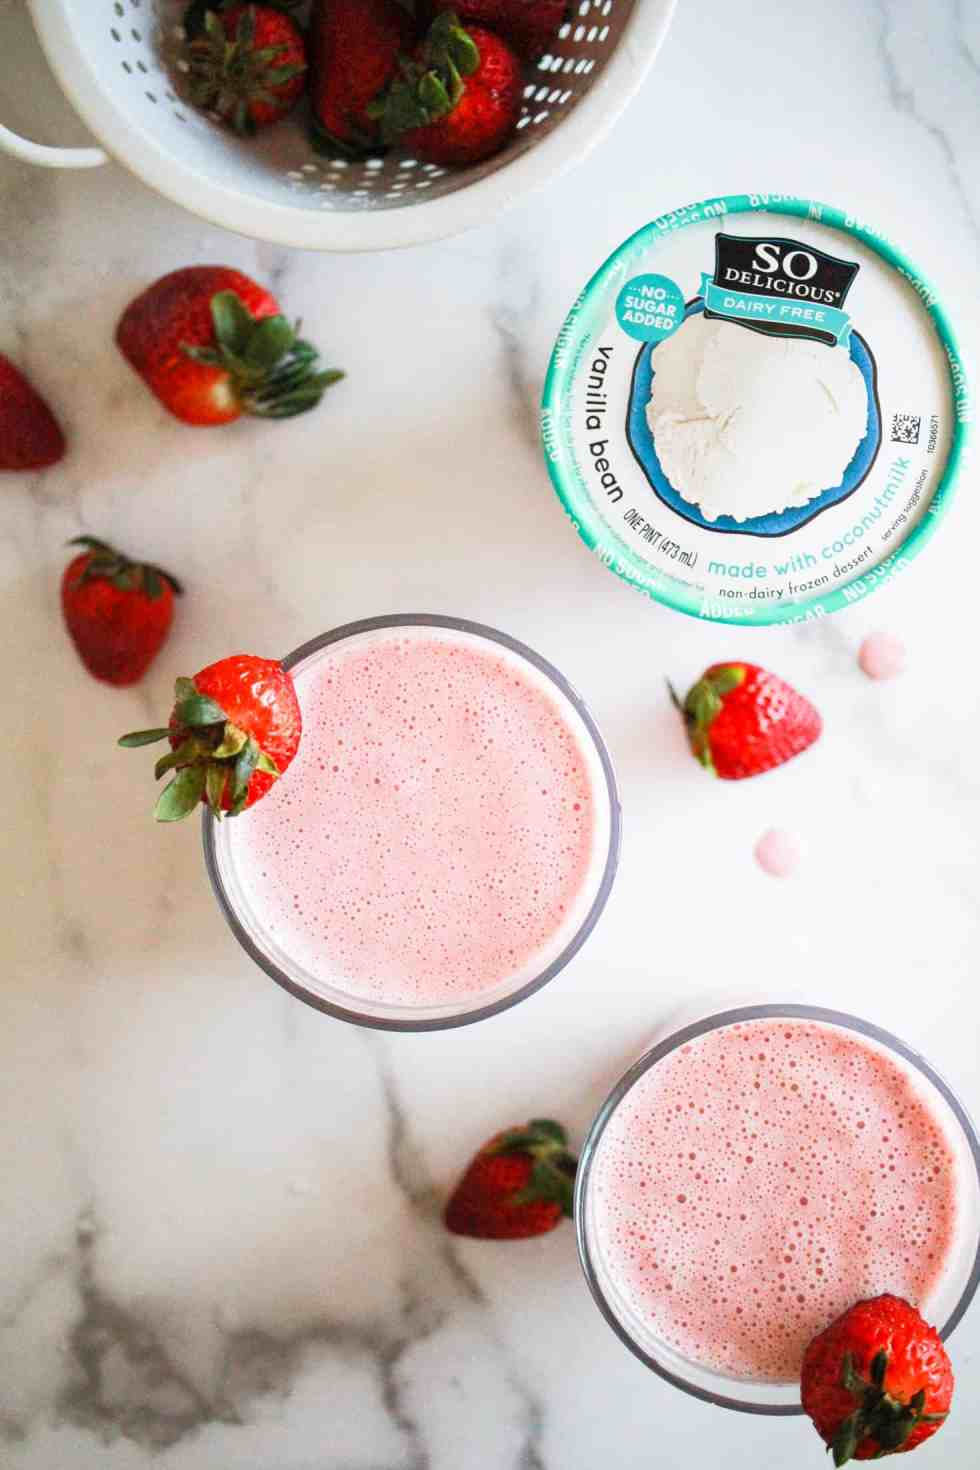 Two strawberry milkshakes with a pint of So Delicious Coconutmilk Ice Cream Alternative and fresh strawberries.